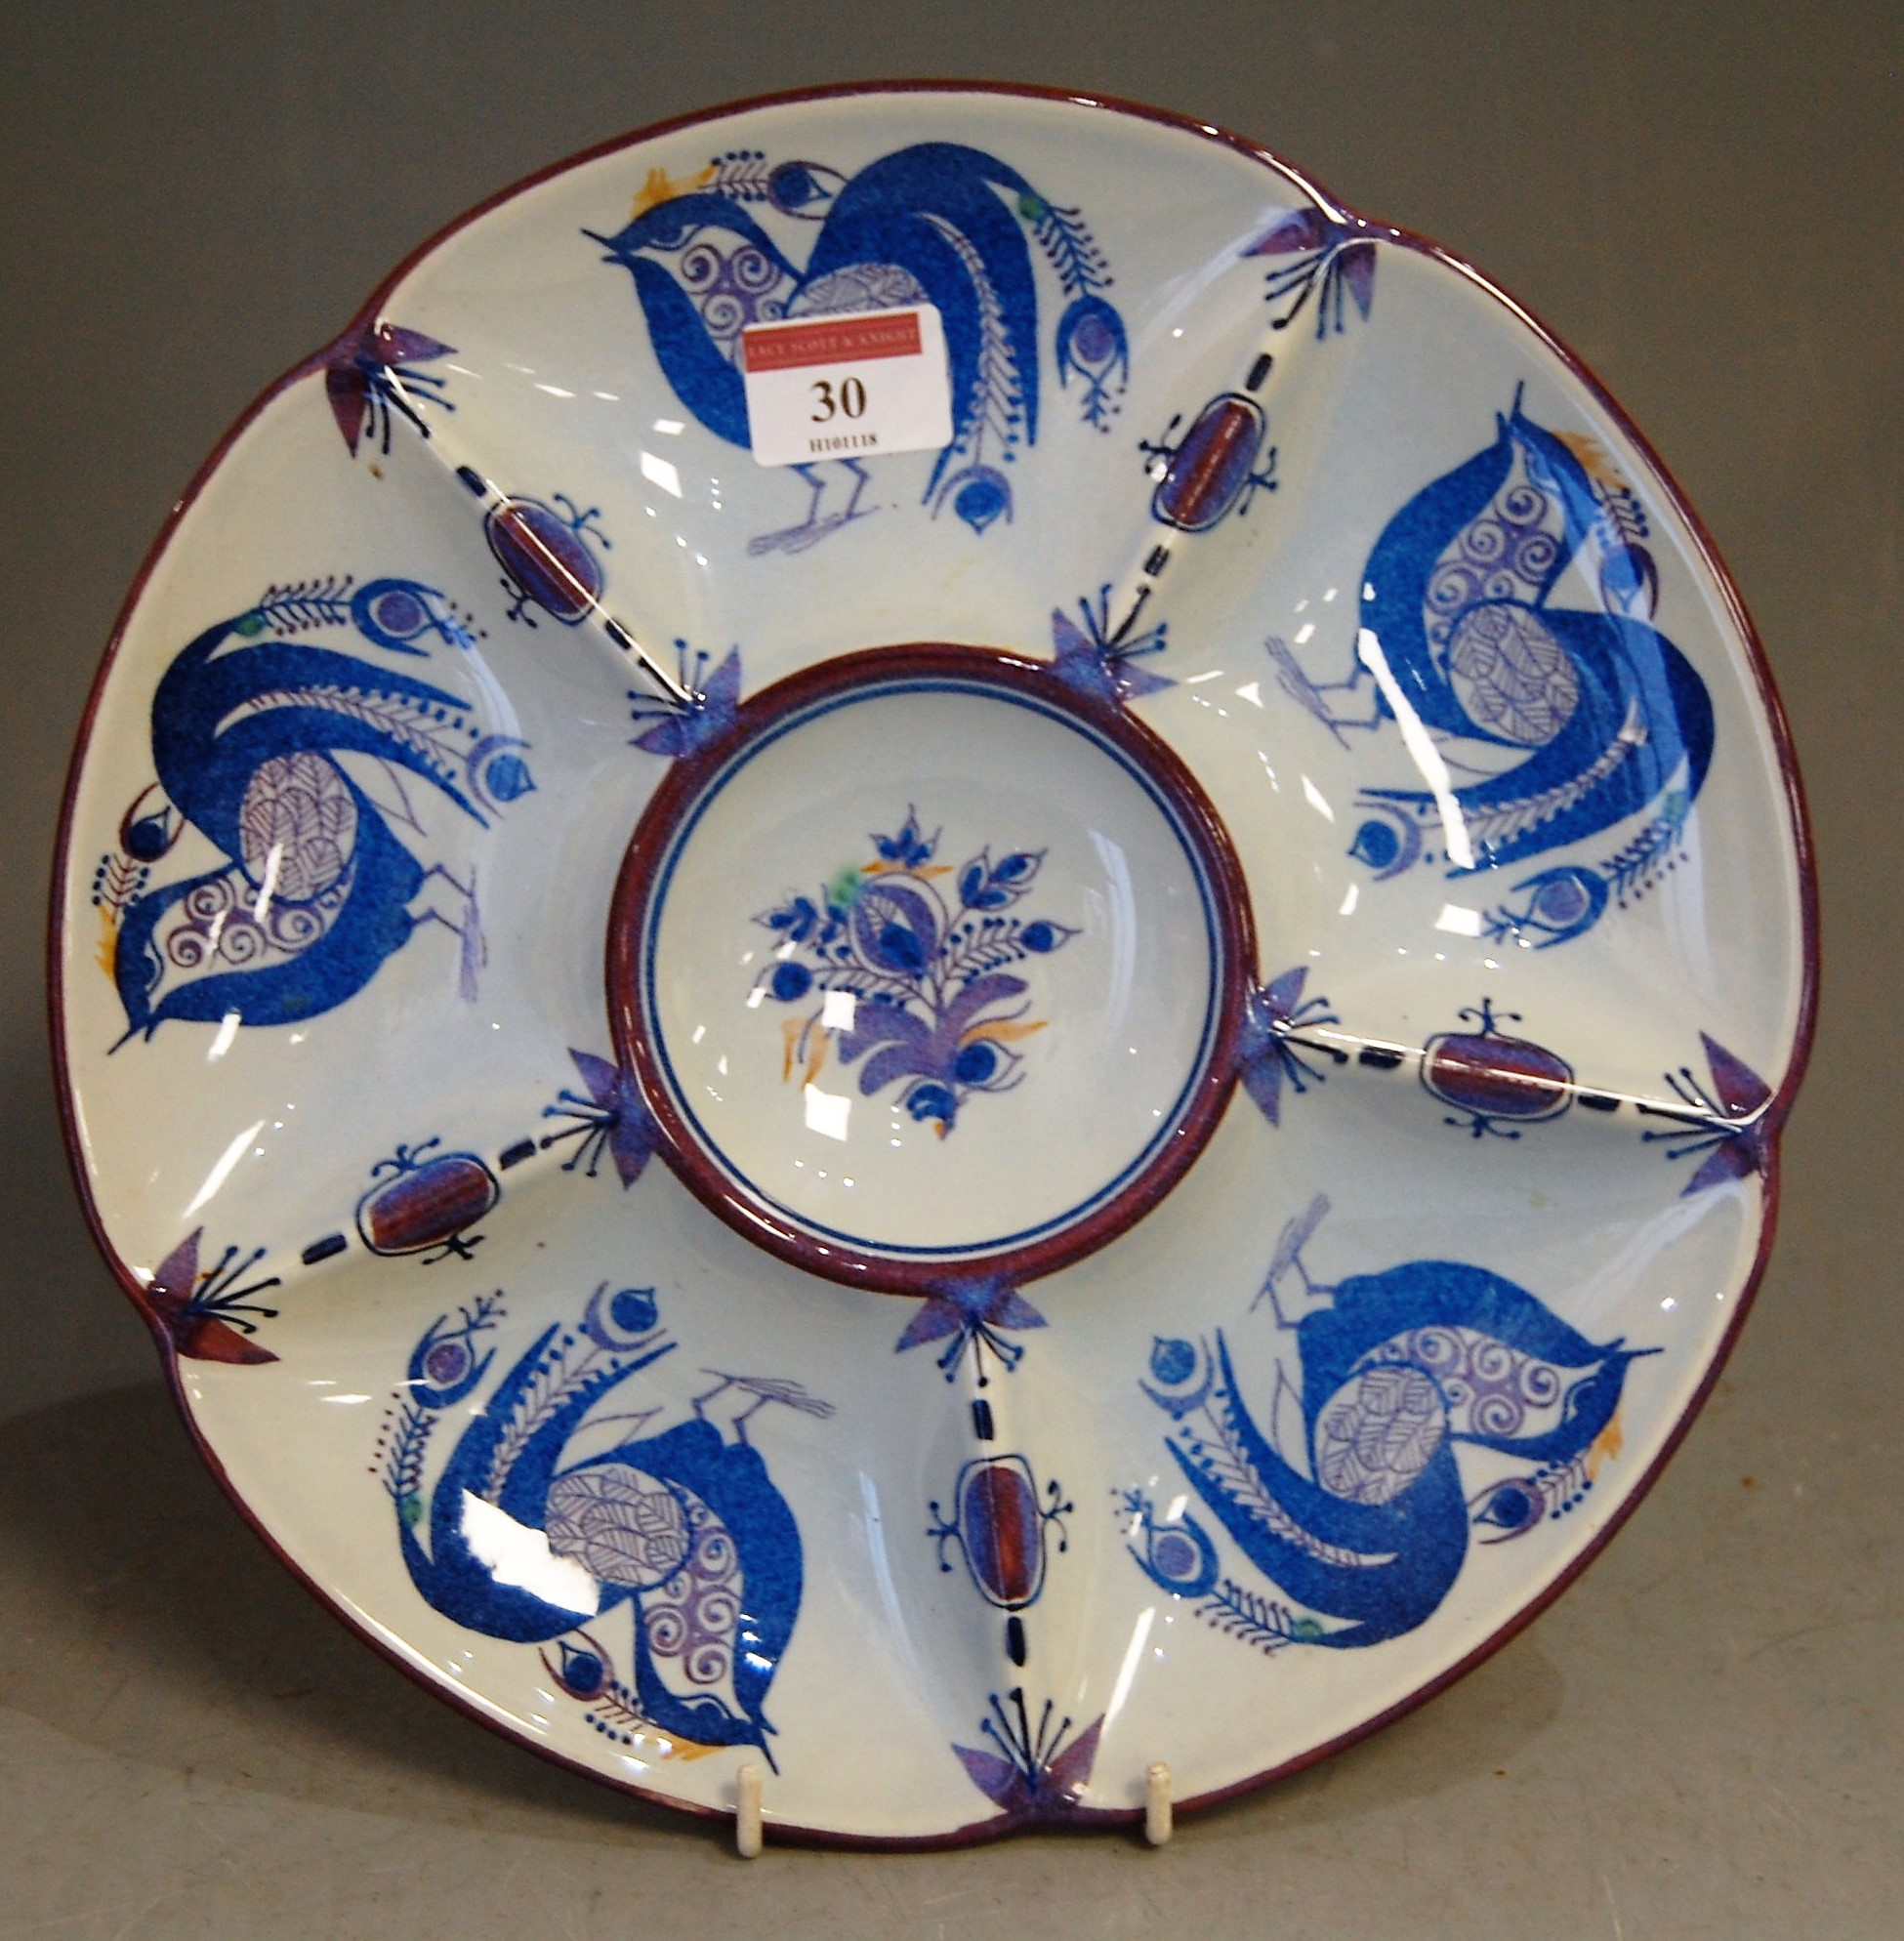 Lot 30 - A Royal Copenhagen faience pottery hors d'oeuvres dish, having printed mark verso and numbered 218/